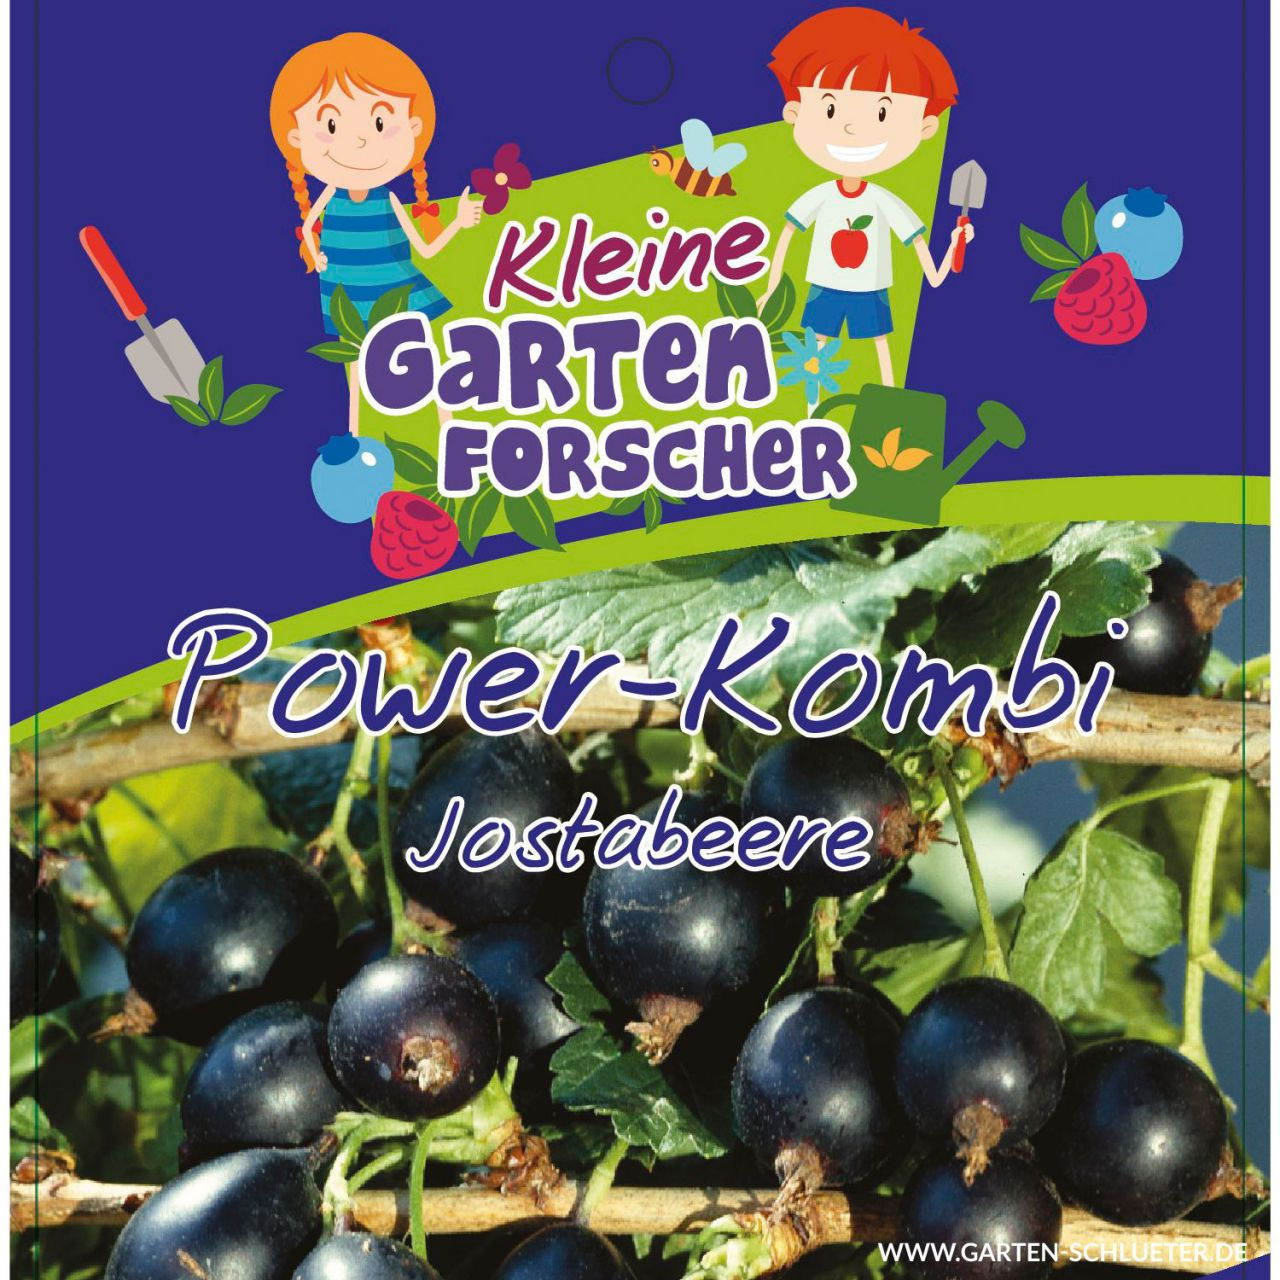 Jostabeere 'Power-Kombi' Kleine Gartenforscher